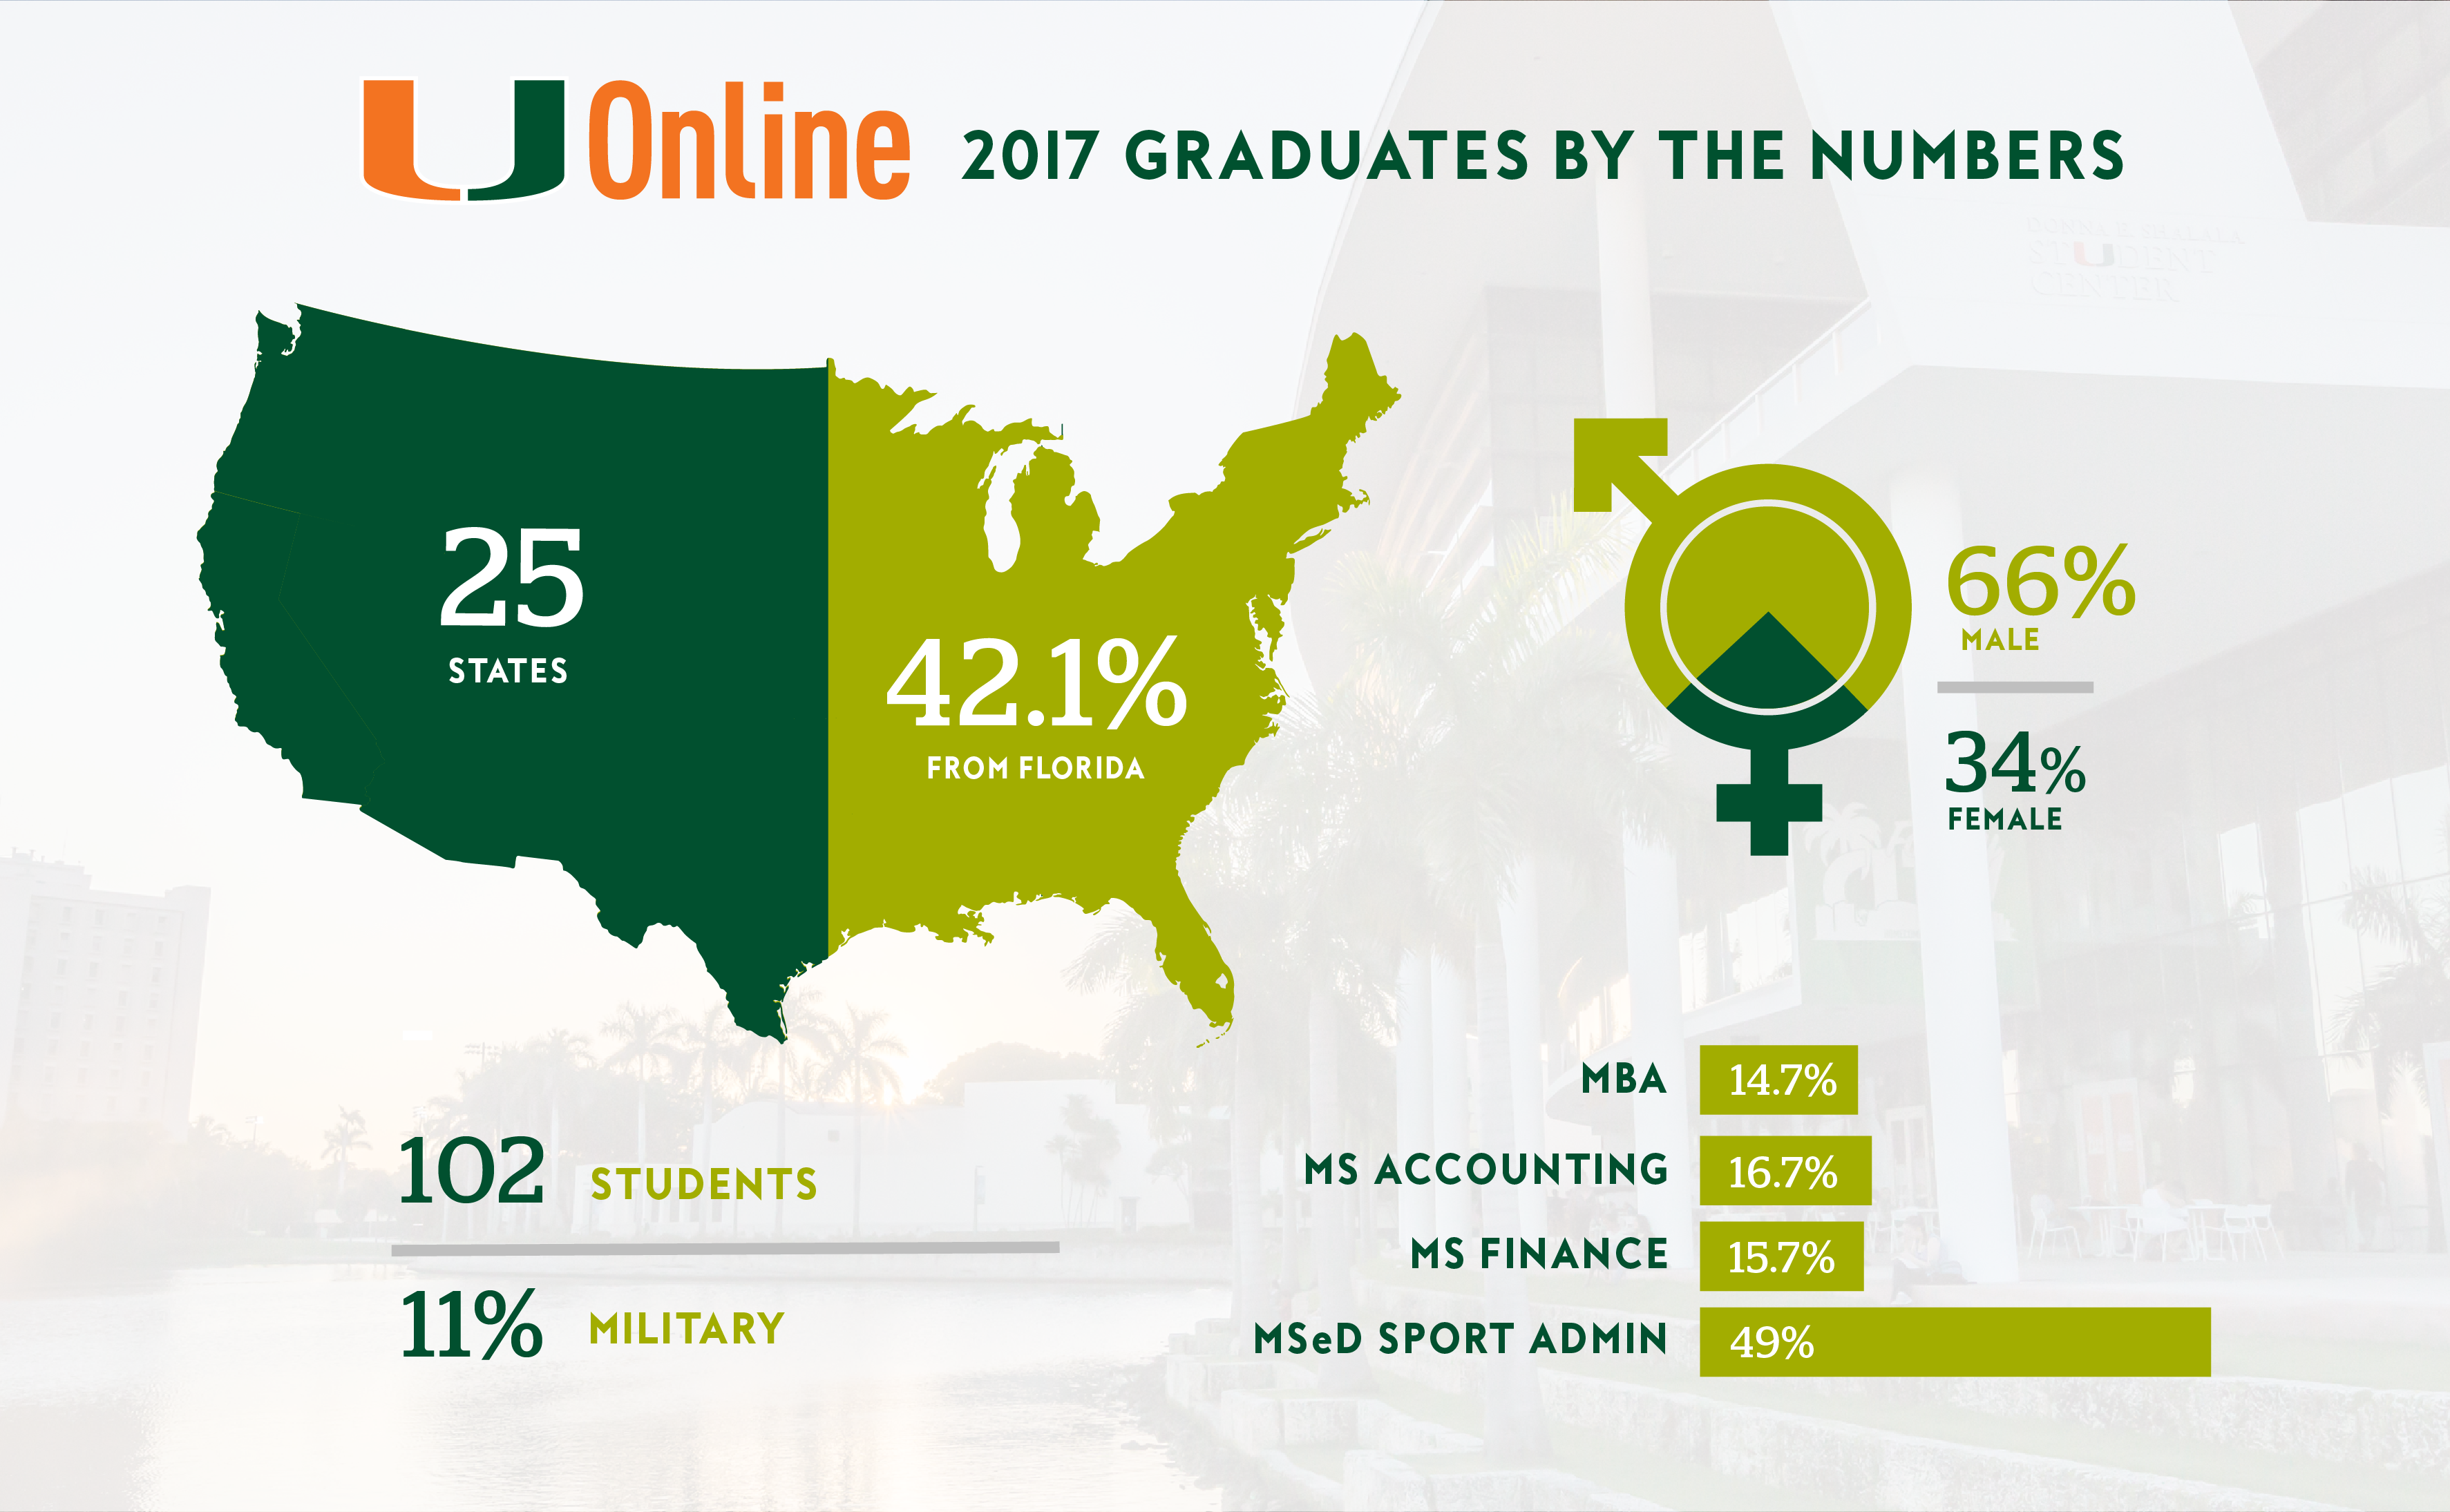 GraduateInfographic_2017-02.png